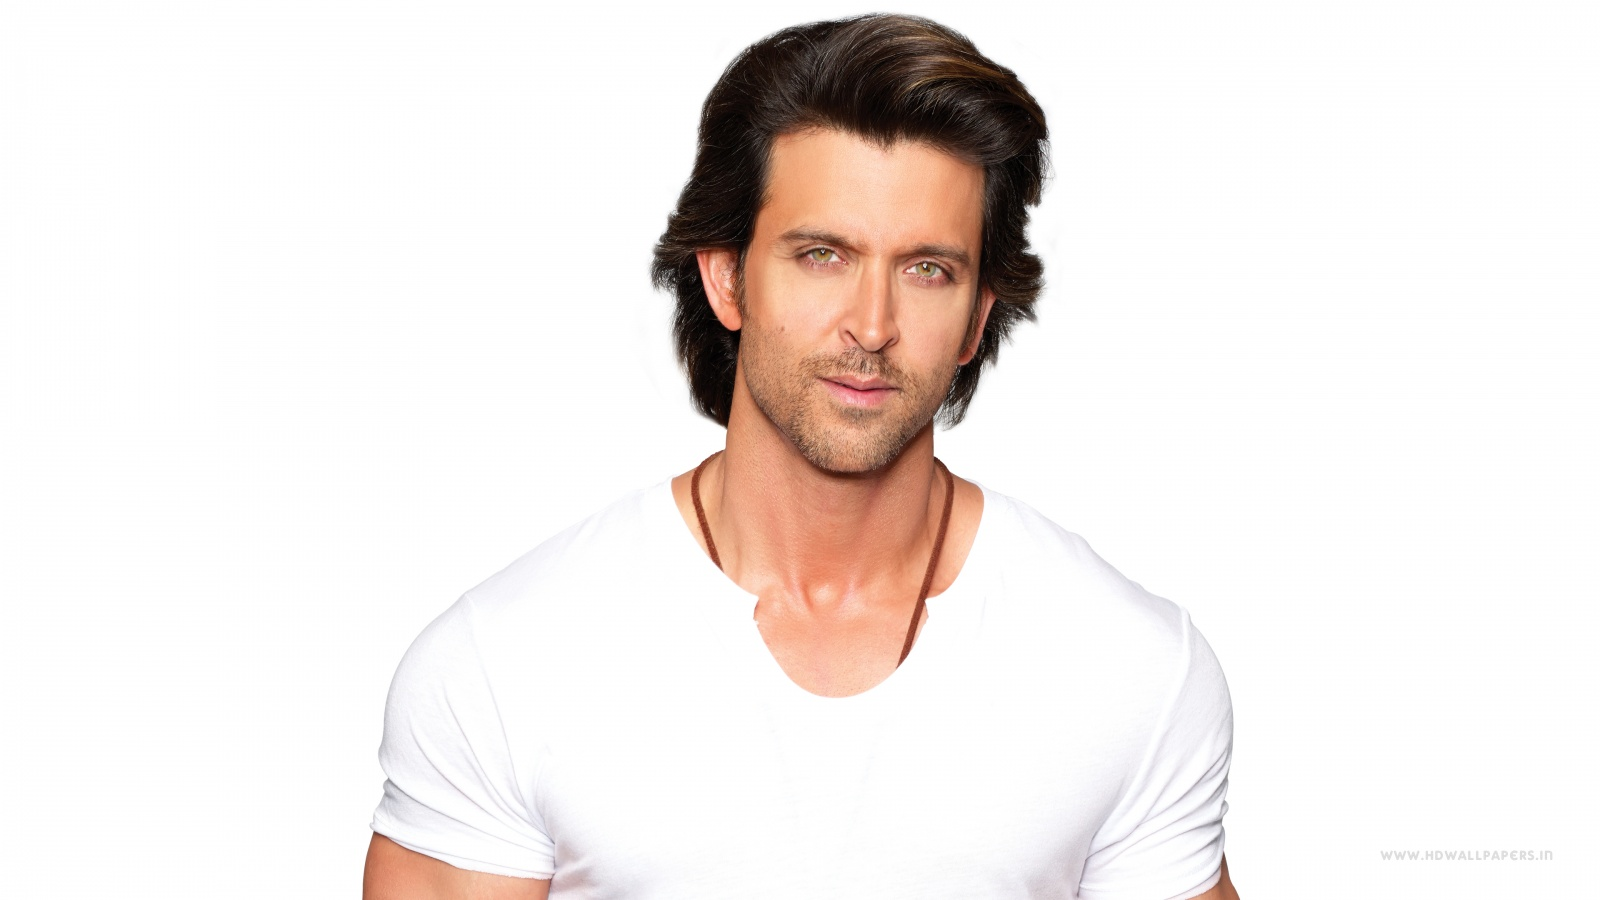 Actors Wallpapers Download Free: Actor Hrithik Roshan Wallpapers In Jpg Format For Free